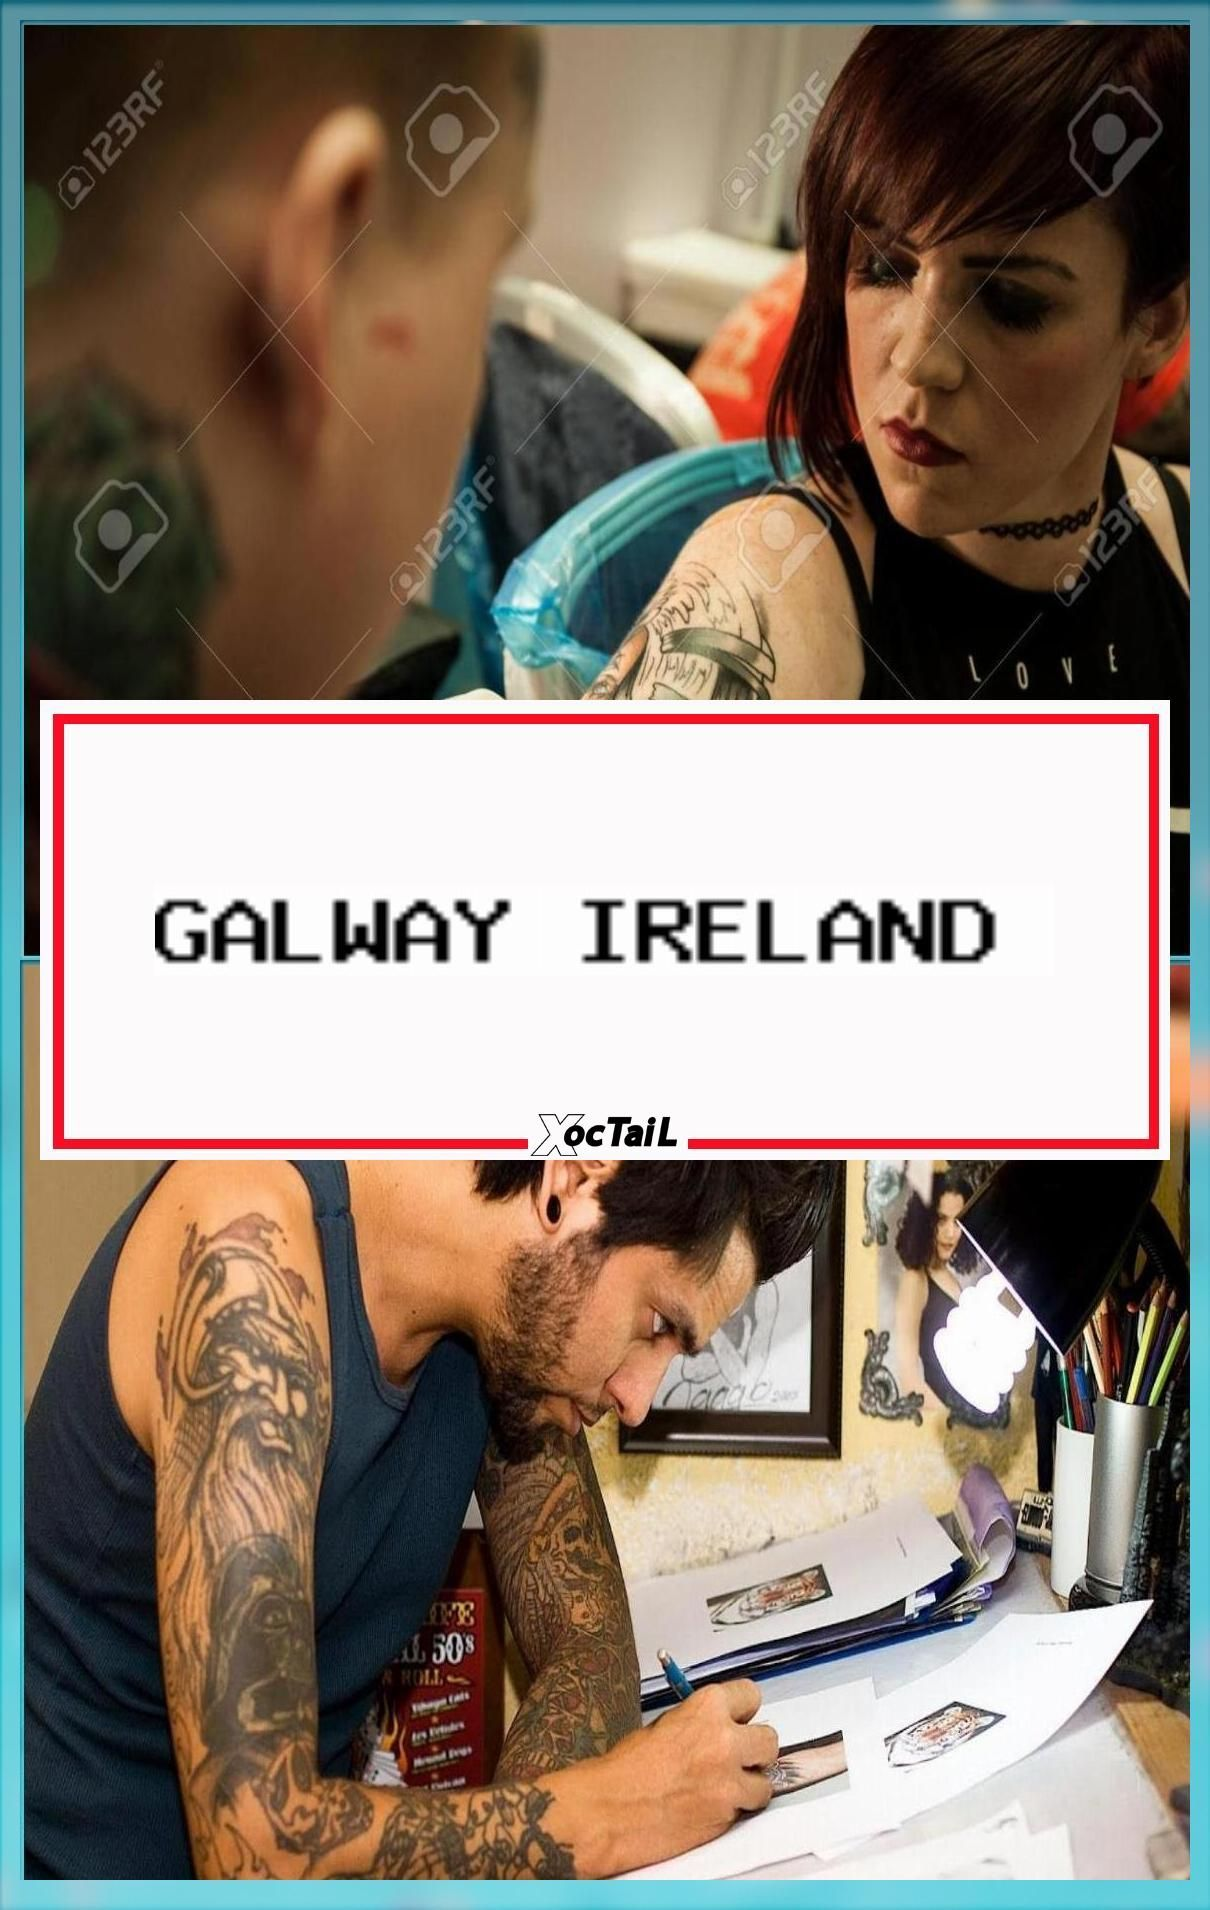 Galway Ireland September 12 Tattoo Artists At Work During Artist Tattoo Drawing Become Professional Tattoos Practice Tips Tattooing Ink Artists Designs Ske In 2020